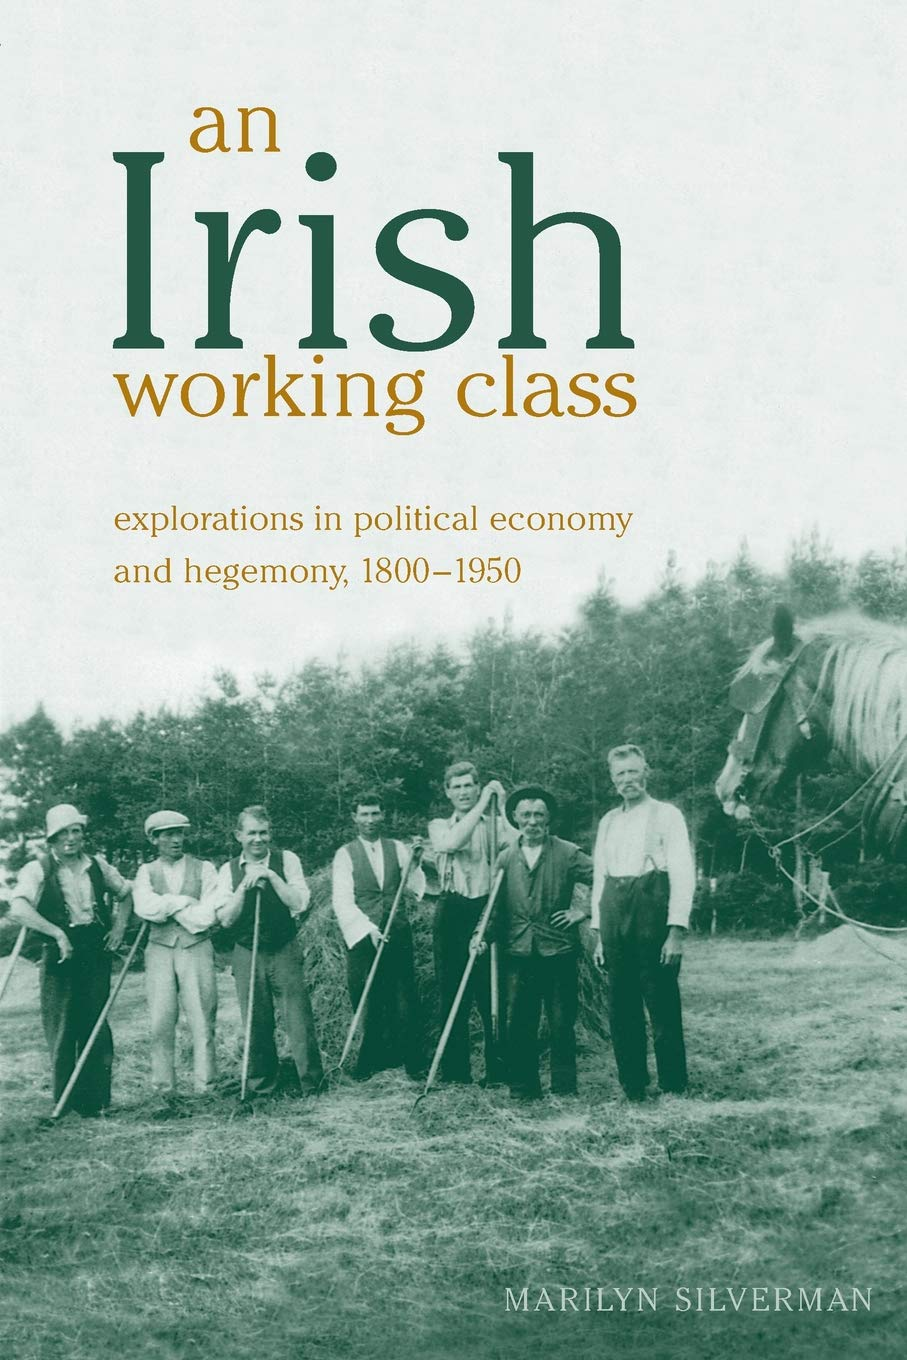 Read Online An Irish Working Class: Explorations in Political Economy and Hegemony, 1800-1950 (Anthropological Horizons) ebook